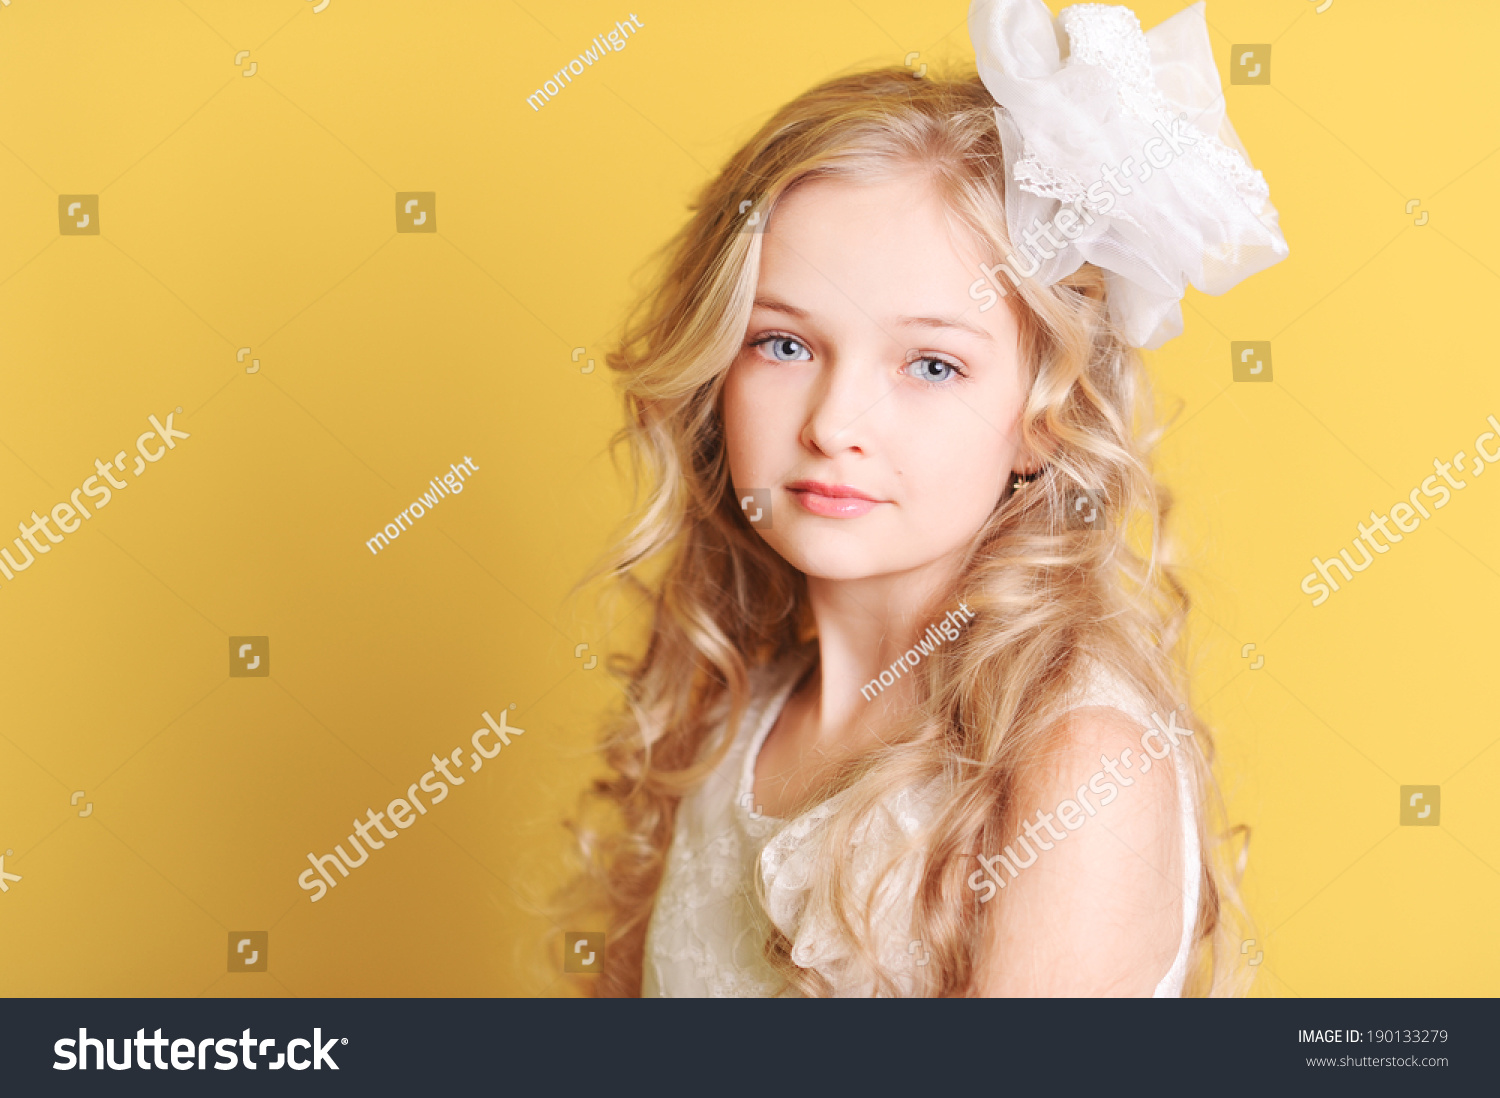 Cute 12 Year Old Girls cute kid girl 1012 year old stock photo 190133279 - shutterstock